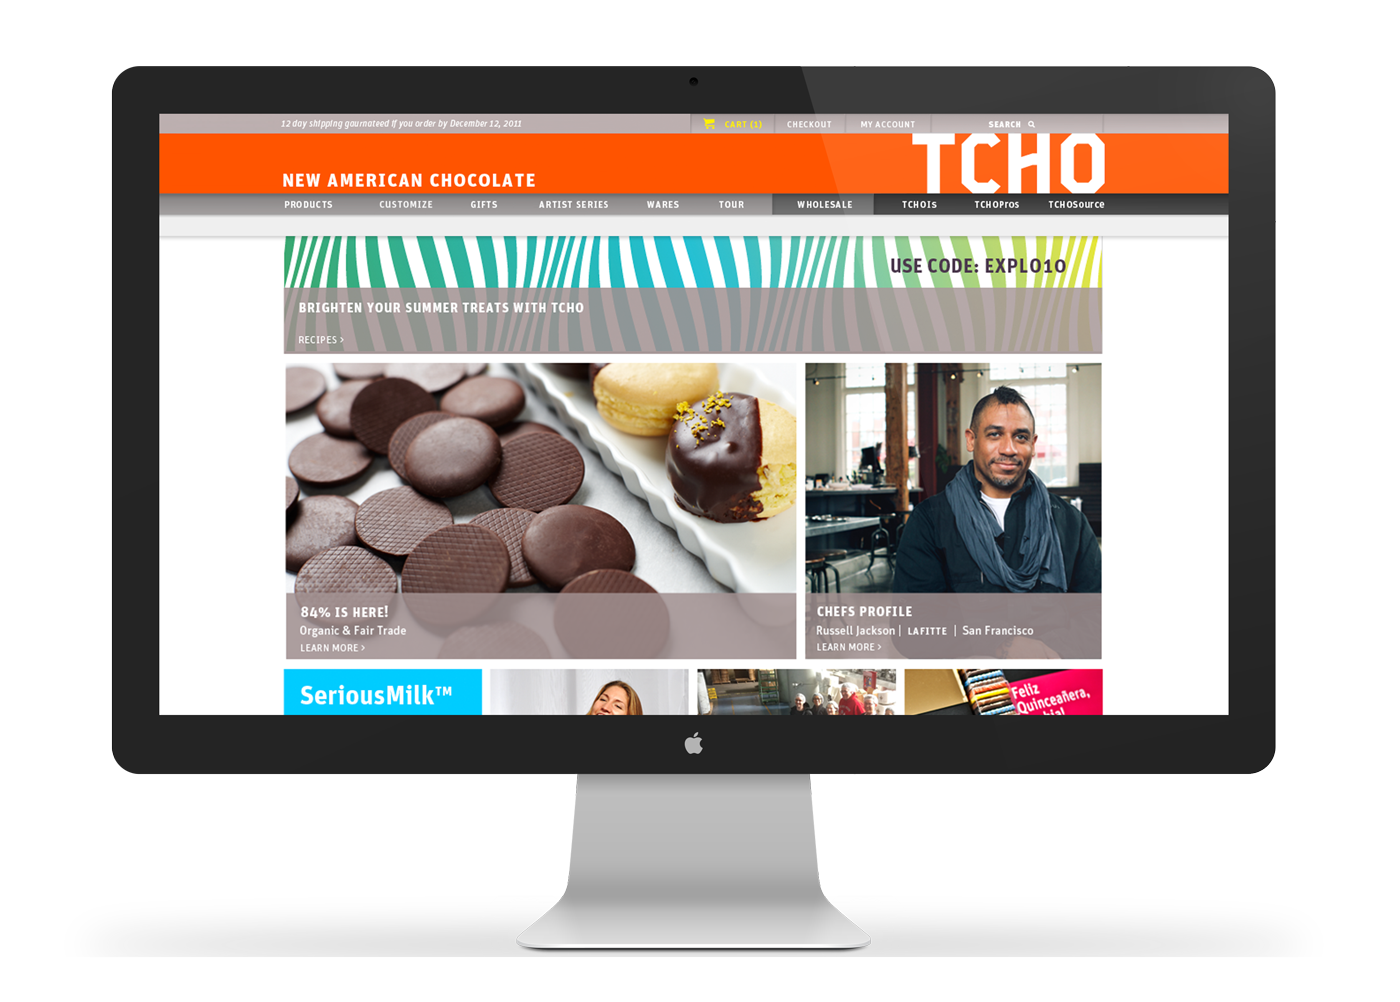 TCHO's new responsive website design—home page.